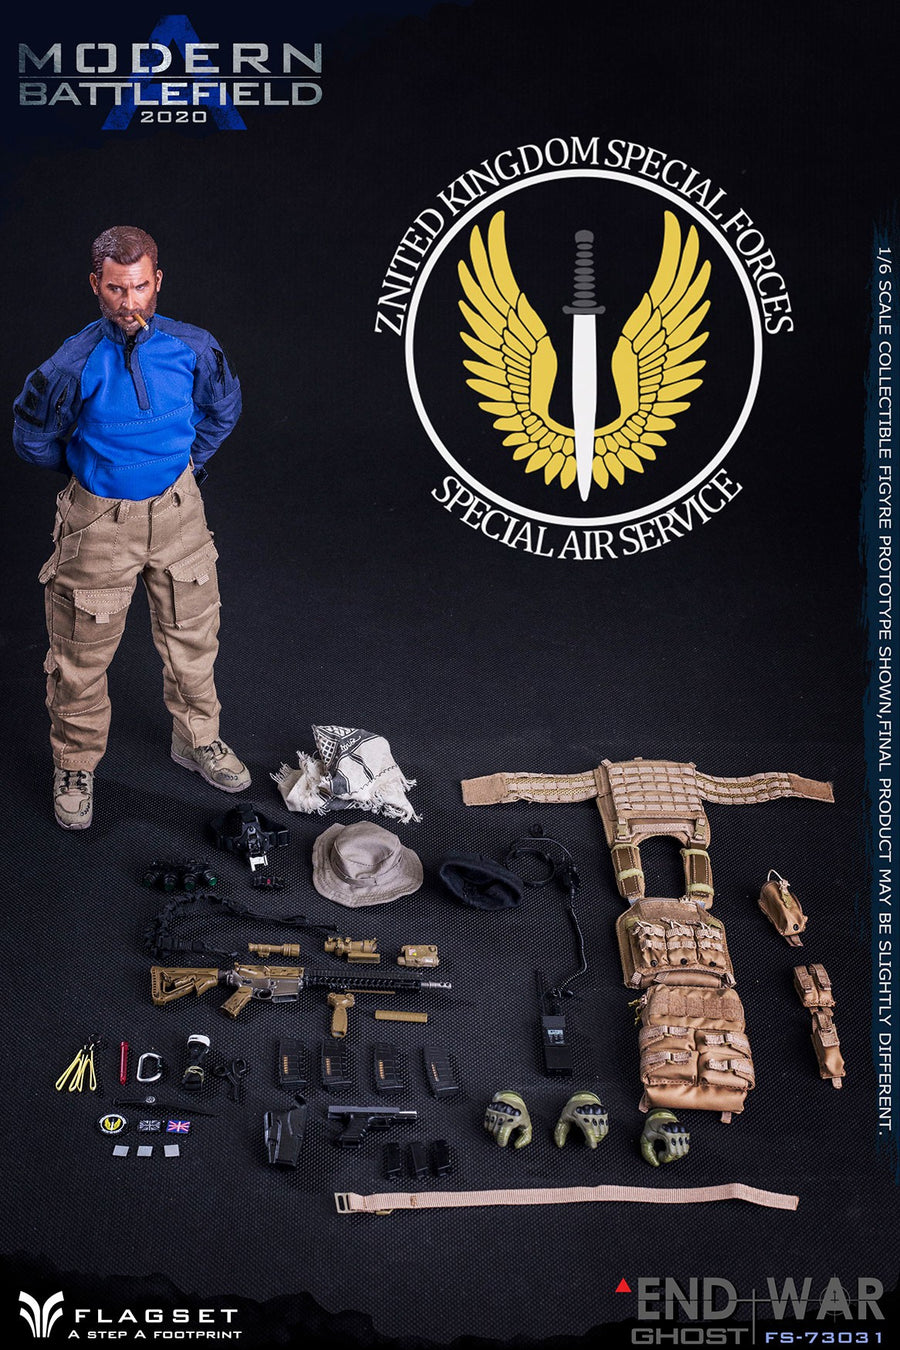 Modern Battlefield - Tan Assault Vest w/5.56mm Magazines